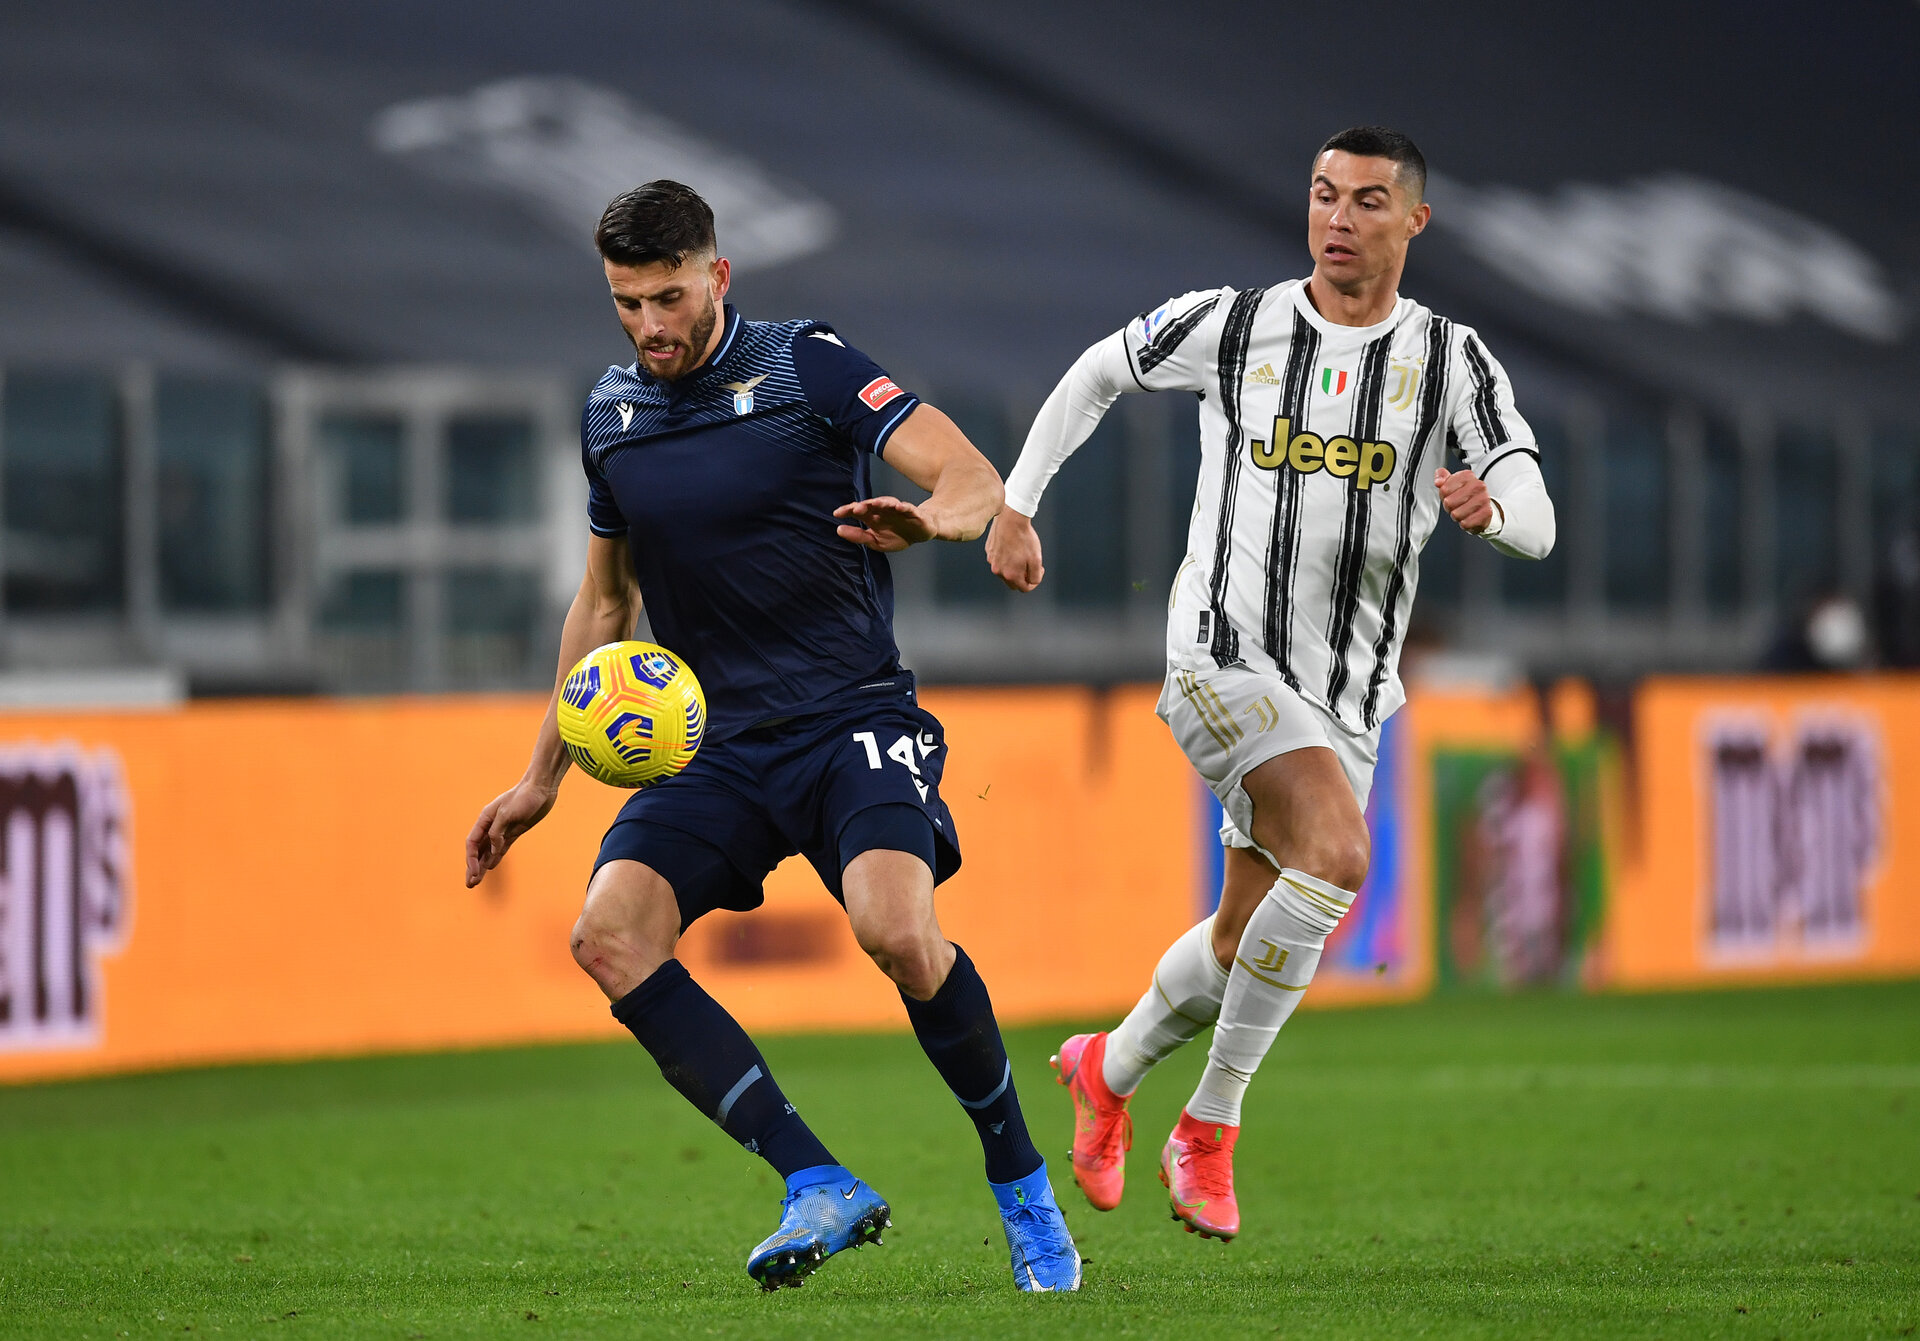 TURIN, ITALY - MARCH 06: Wesley Hoedt of SS Lazio is chased by Cristiano Ronaldo of Juventus  during the Serie A match between Juventus  and SS Lazio at Allianz Stadium on March 06, 2021 in Turin, Italy. Sporting stadiums around Italy remain under strict restrictions due to the Coronavirus Pandemic as Government social distancing laws prohibit fans inside venues resulting in games being played behind closed doors. (Photo by Valerio Pennicino/Getty Images)